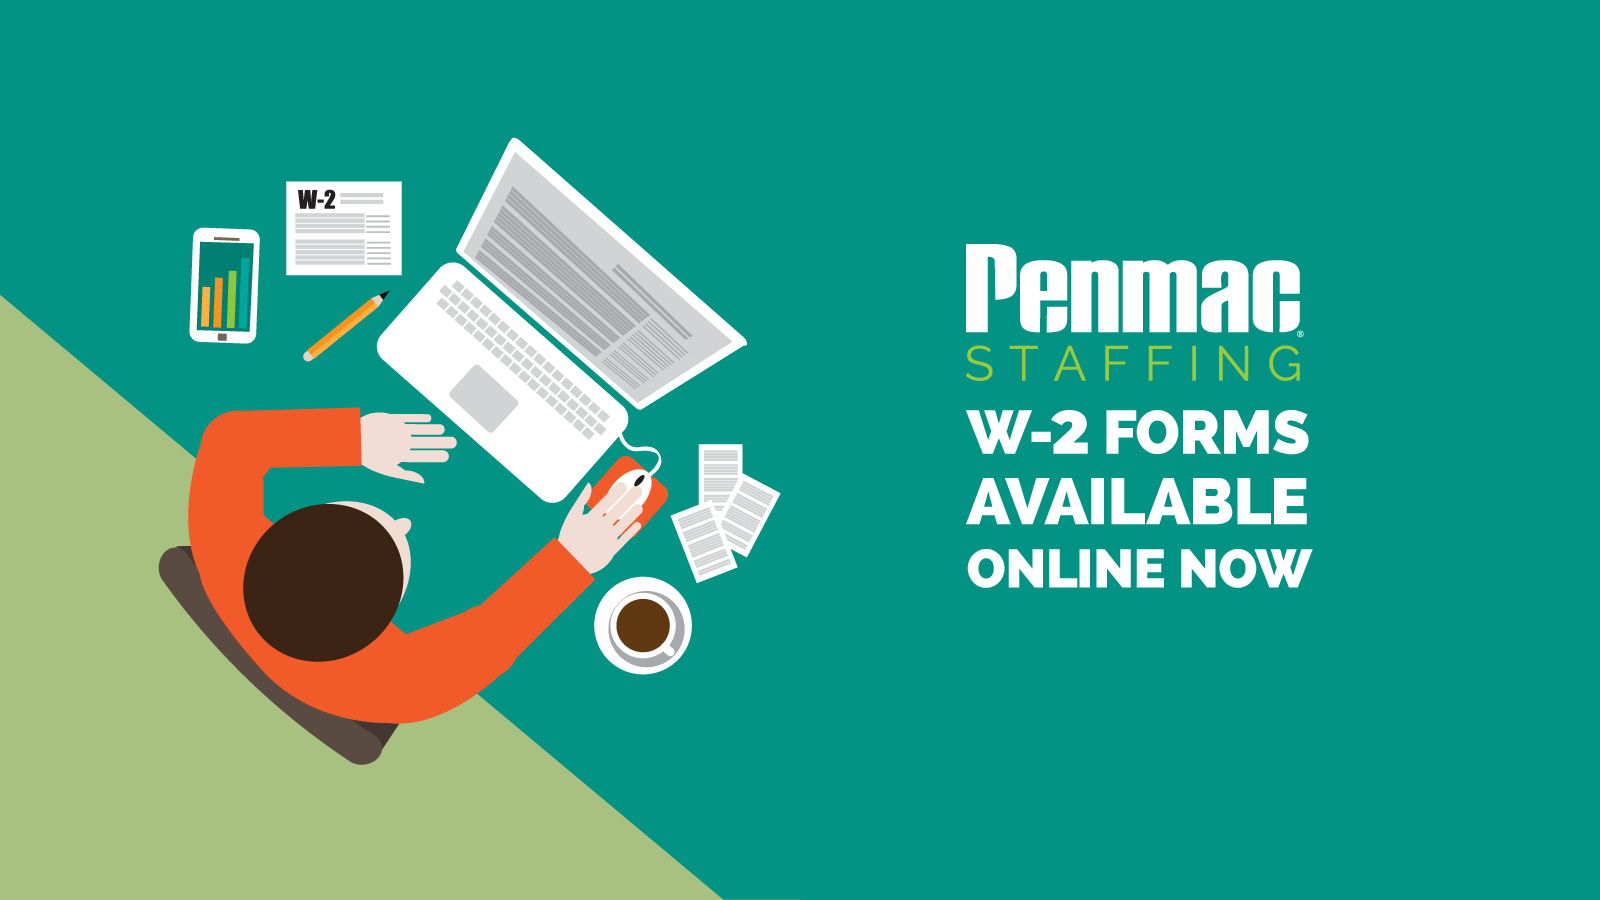 2020 W-2 Forms Now Available Online